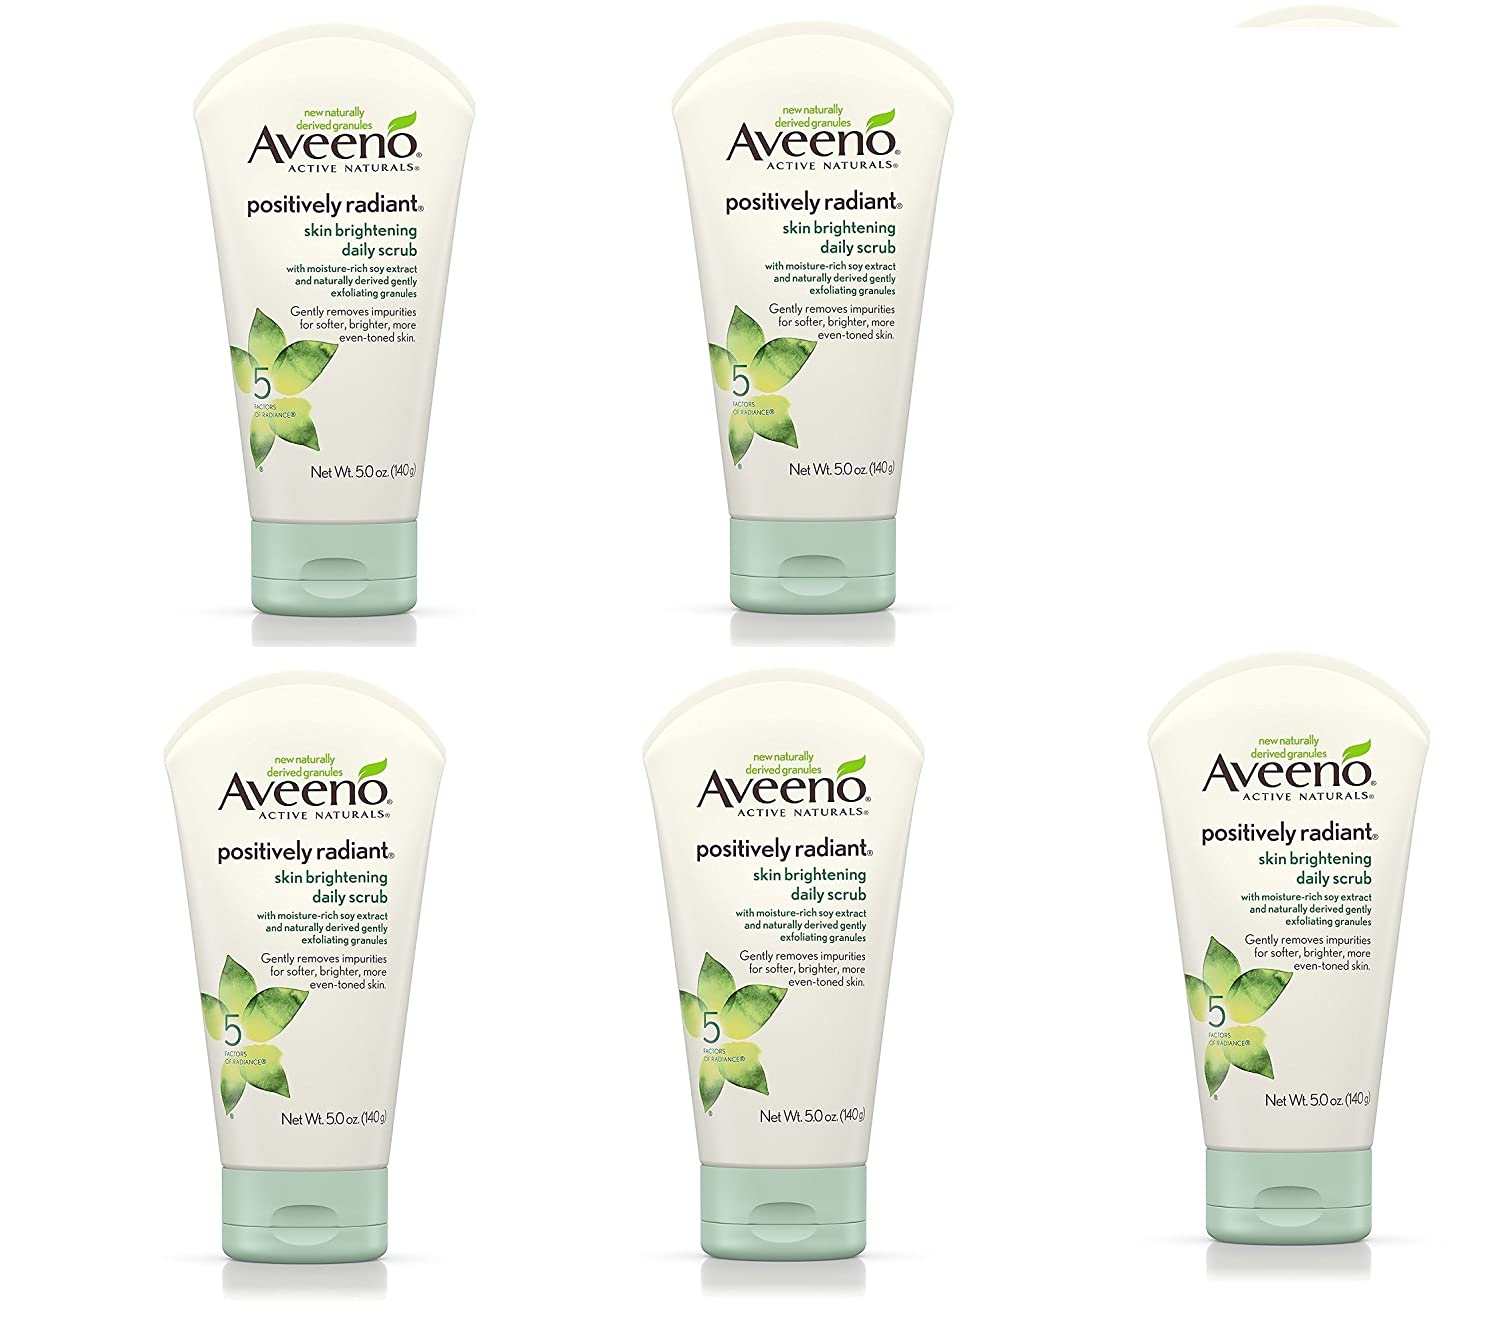 Aveeno Positively Radiant Skin Brightening Exfoliating Daily Scrub, 5 Pack (5 oz)